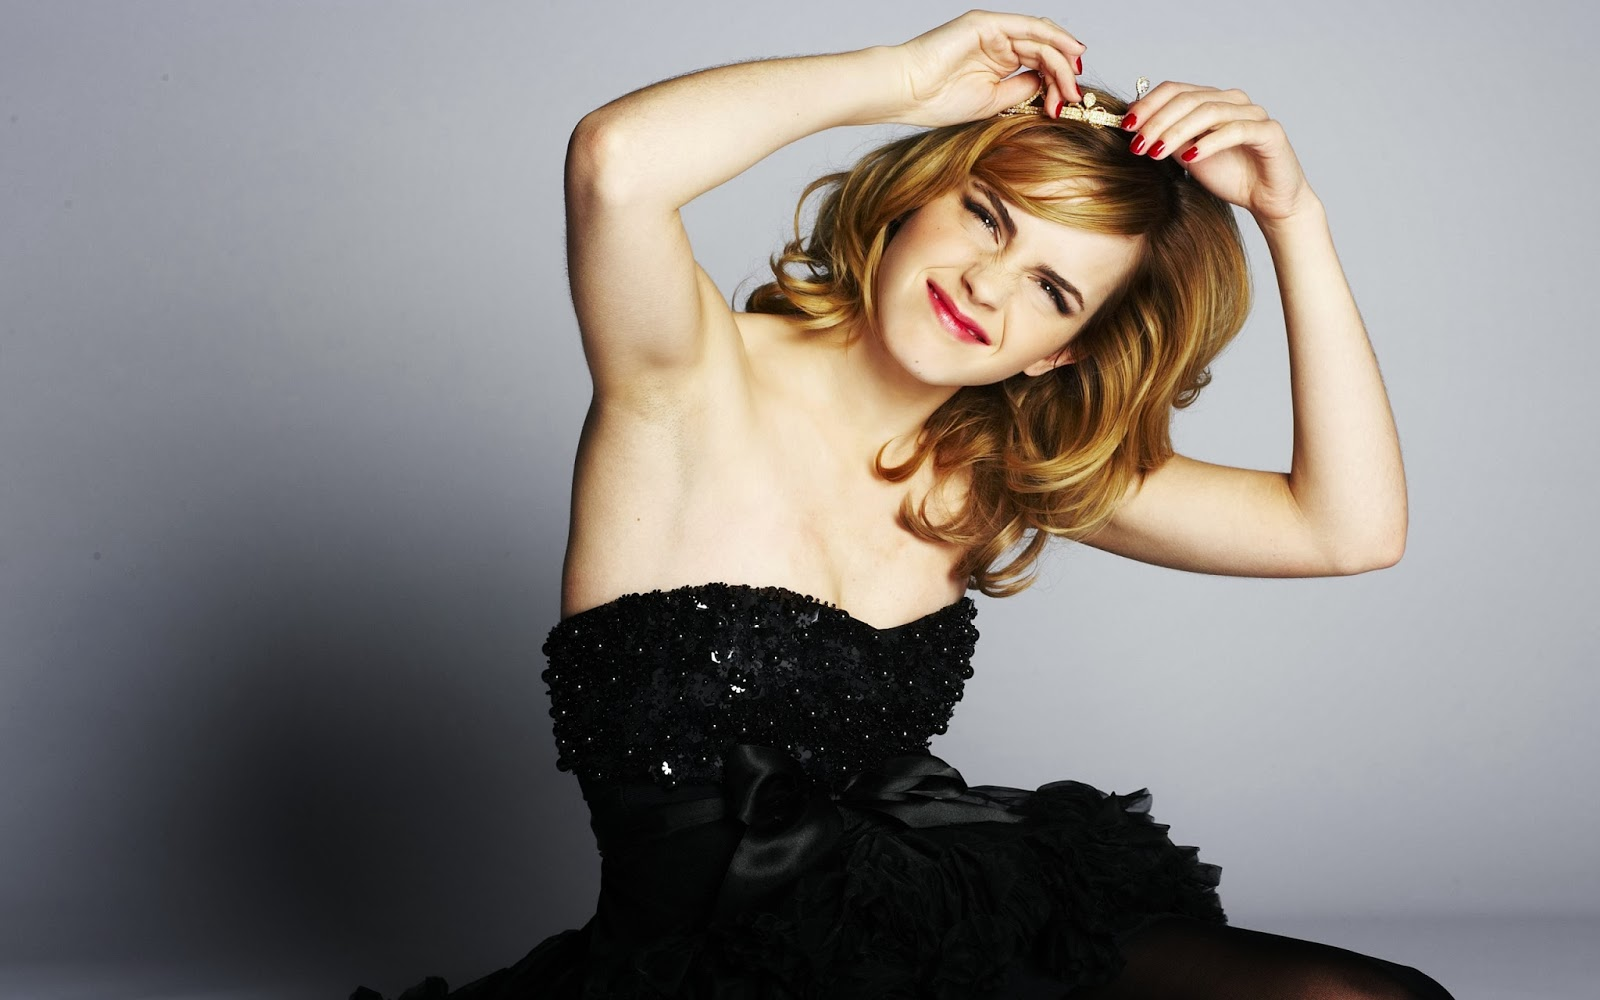 All Wallpapers: Emma Watson Hot & Sexy Wallpapers 2013